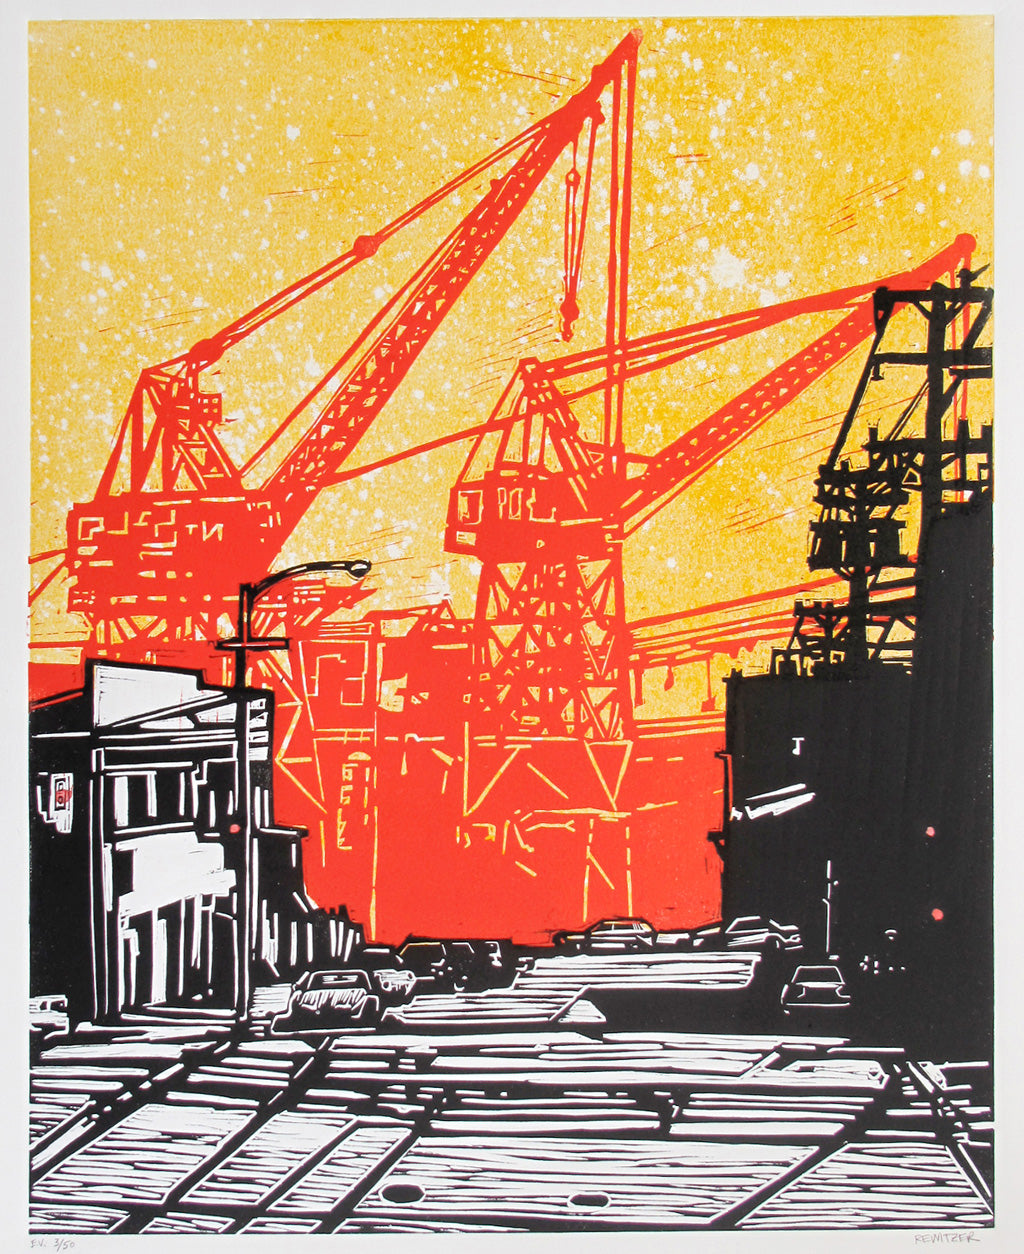 dogpatch-local-artist-original-art-linocut-made-in-san-francisco